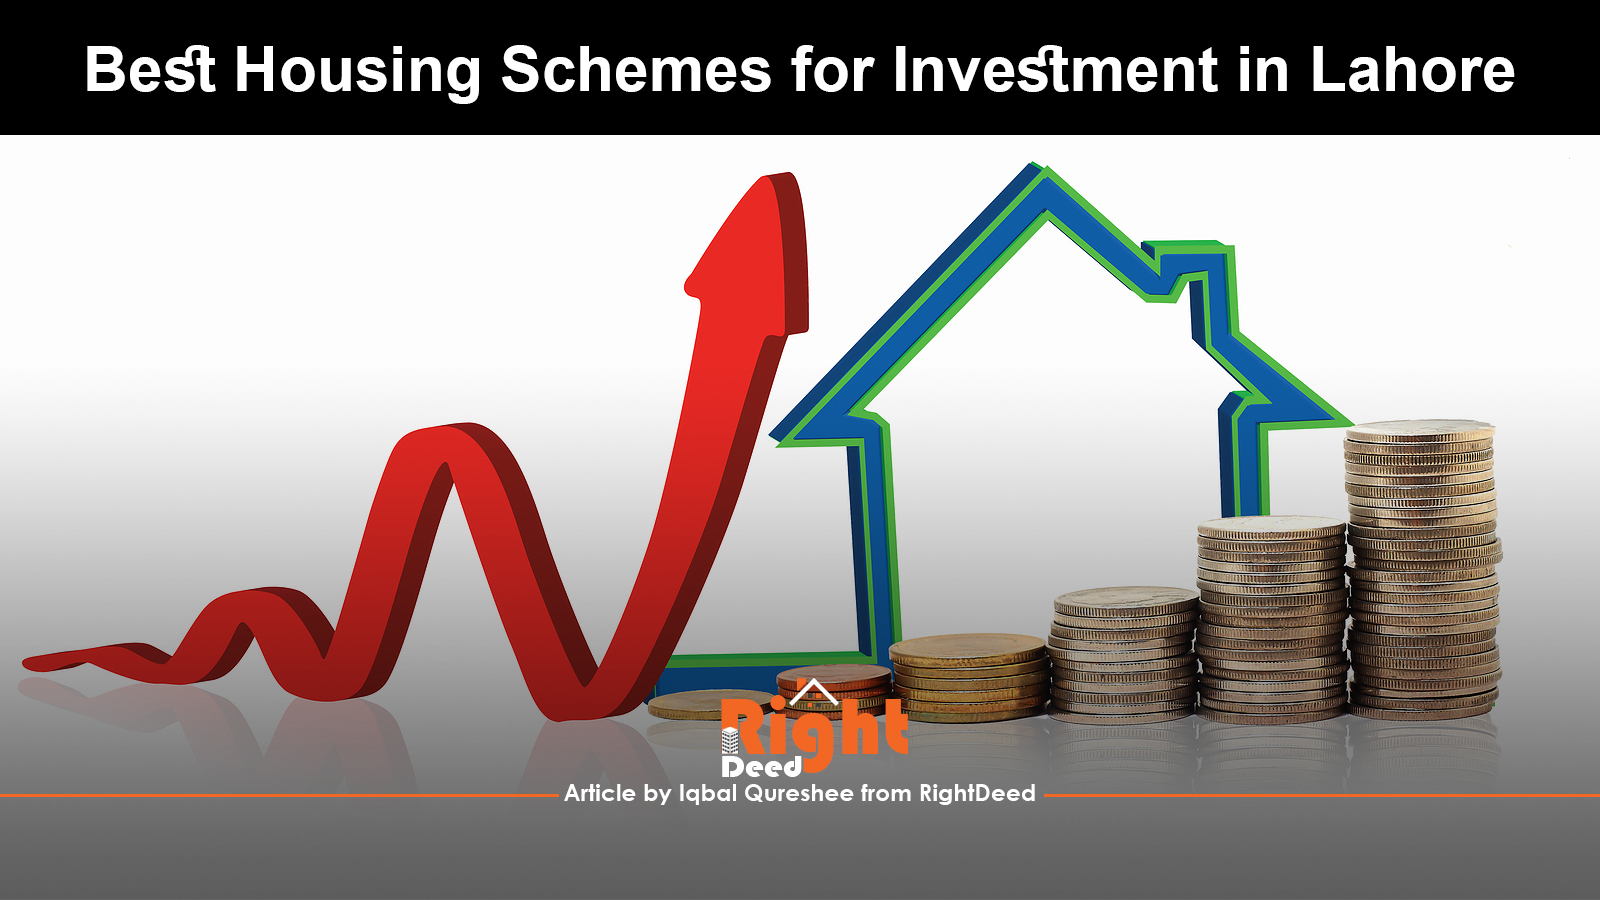 Best Housing Schemes for Investment in Lahore